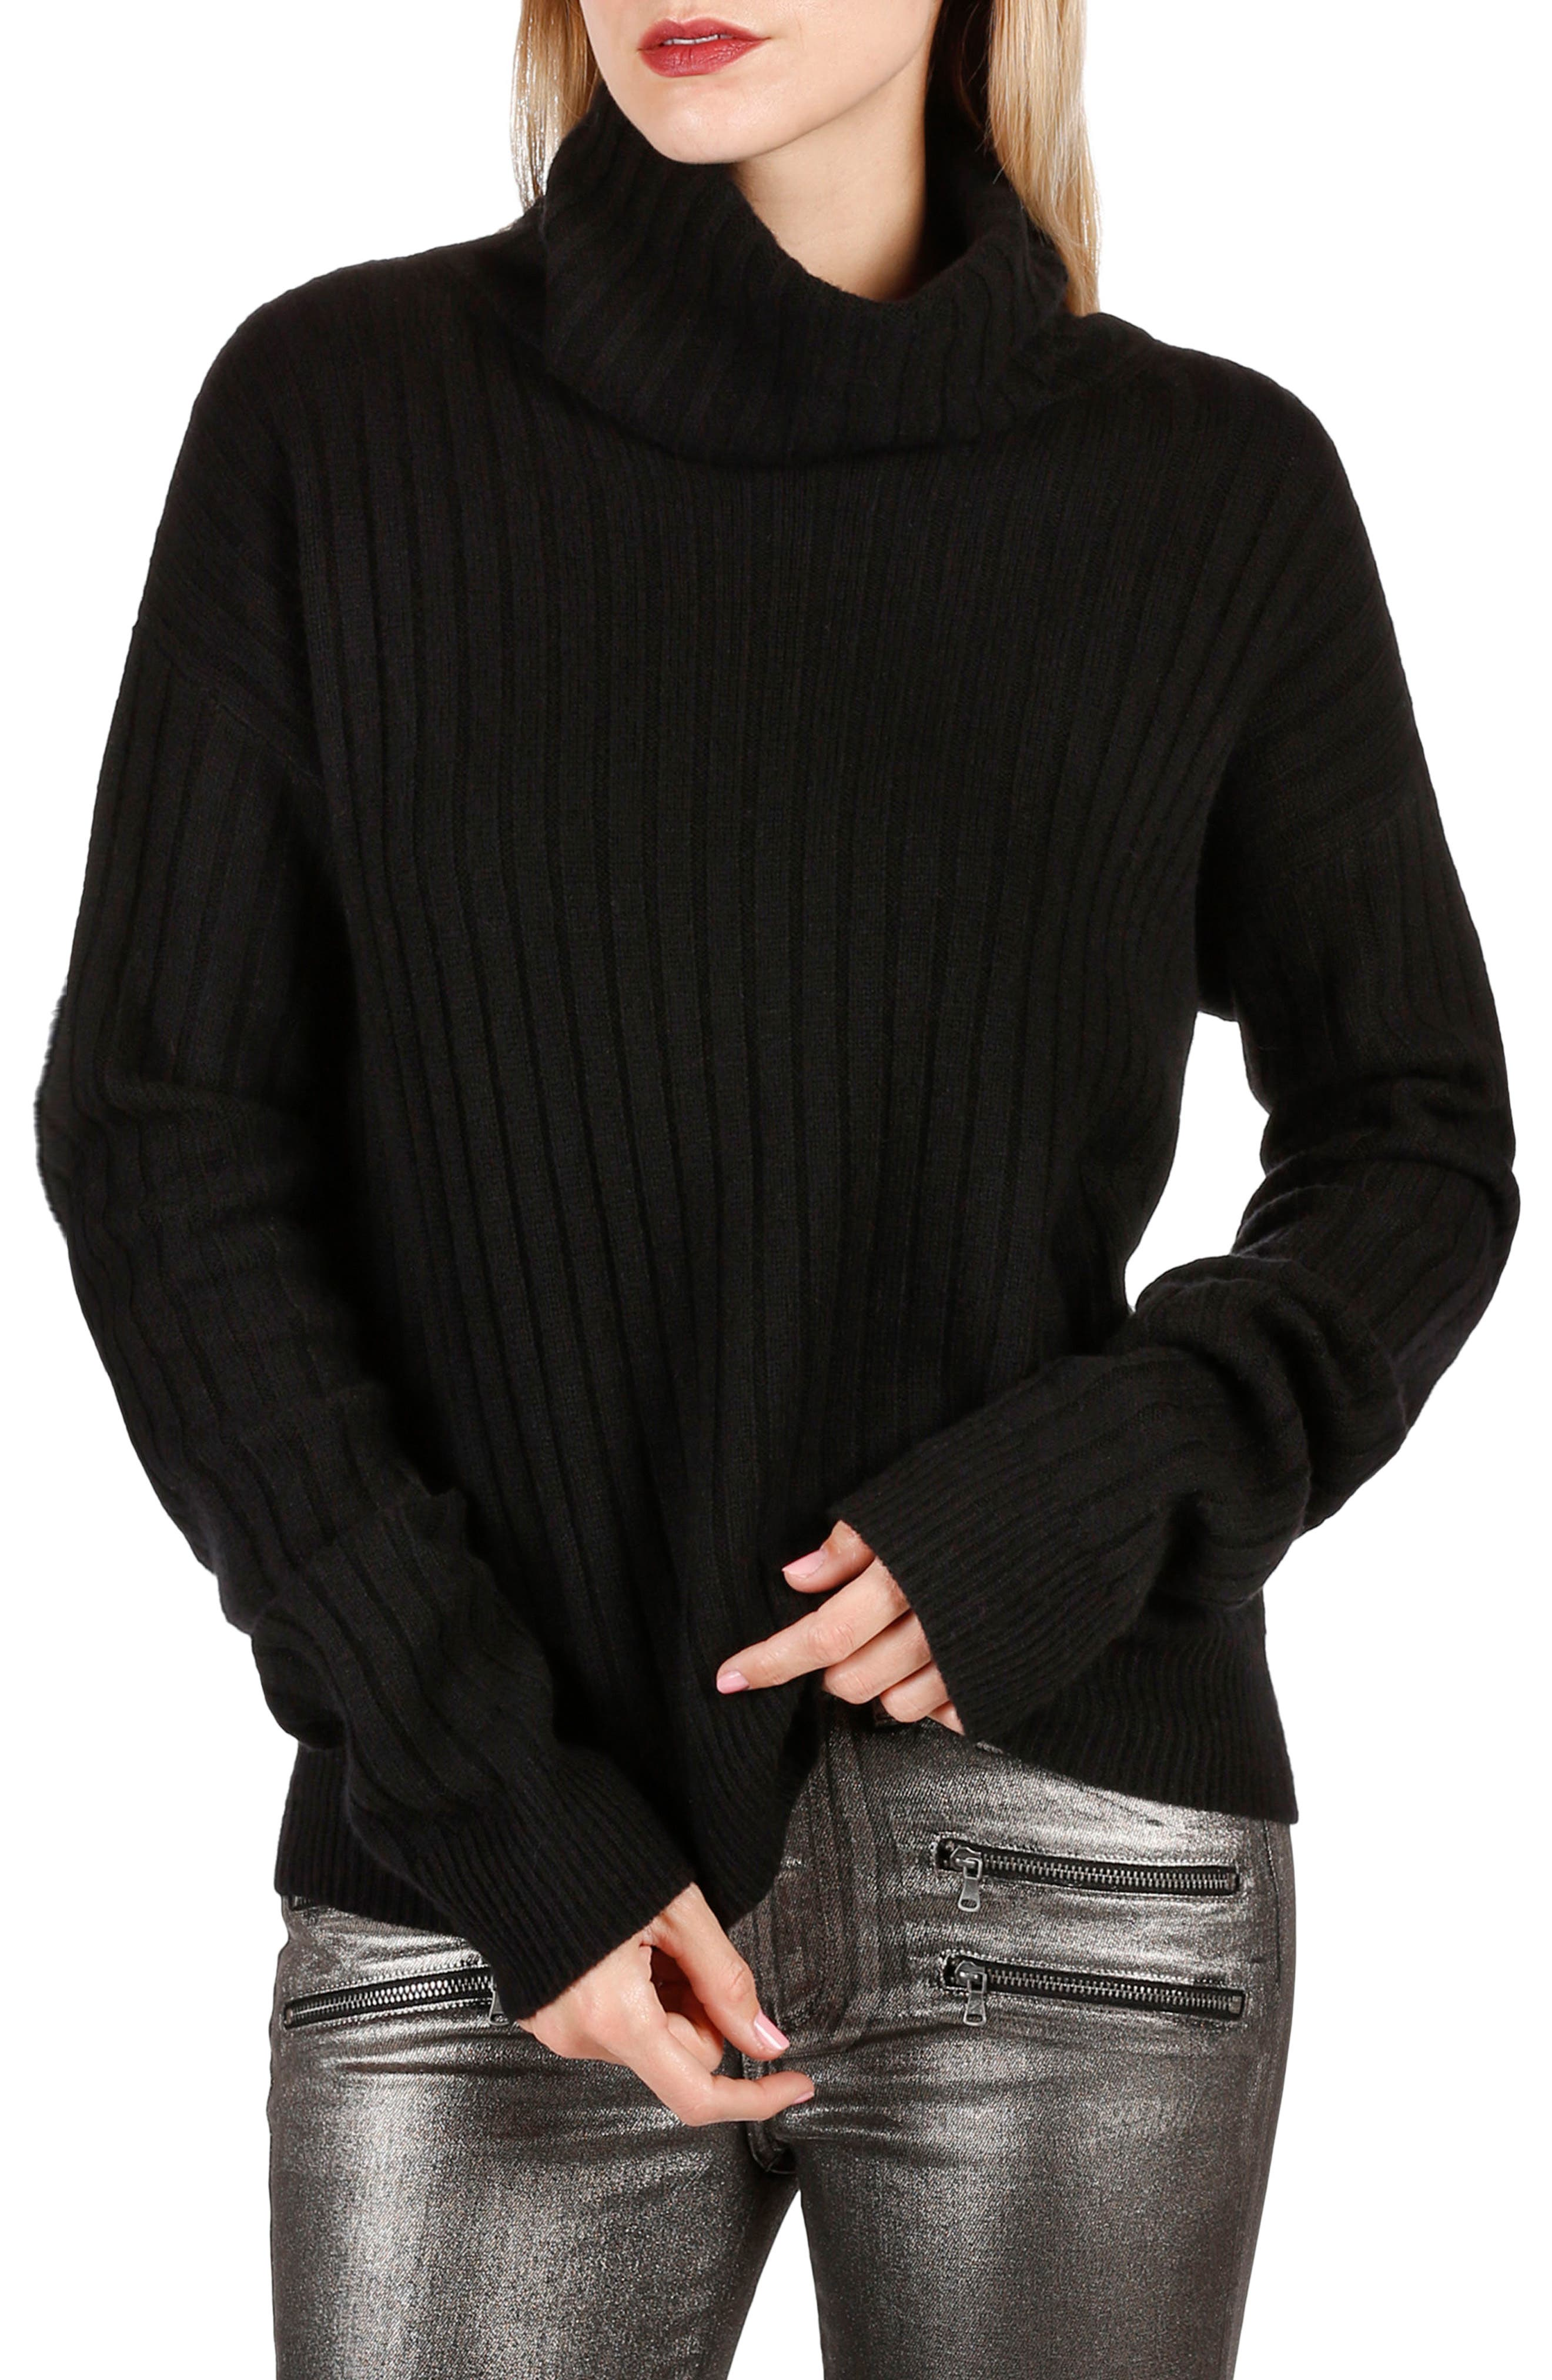 Rosie HW x PAIGE Mina Turtleneck Sweater,                         Main,                         color, Black